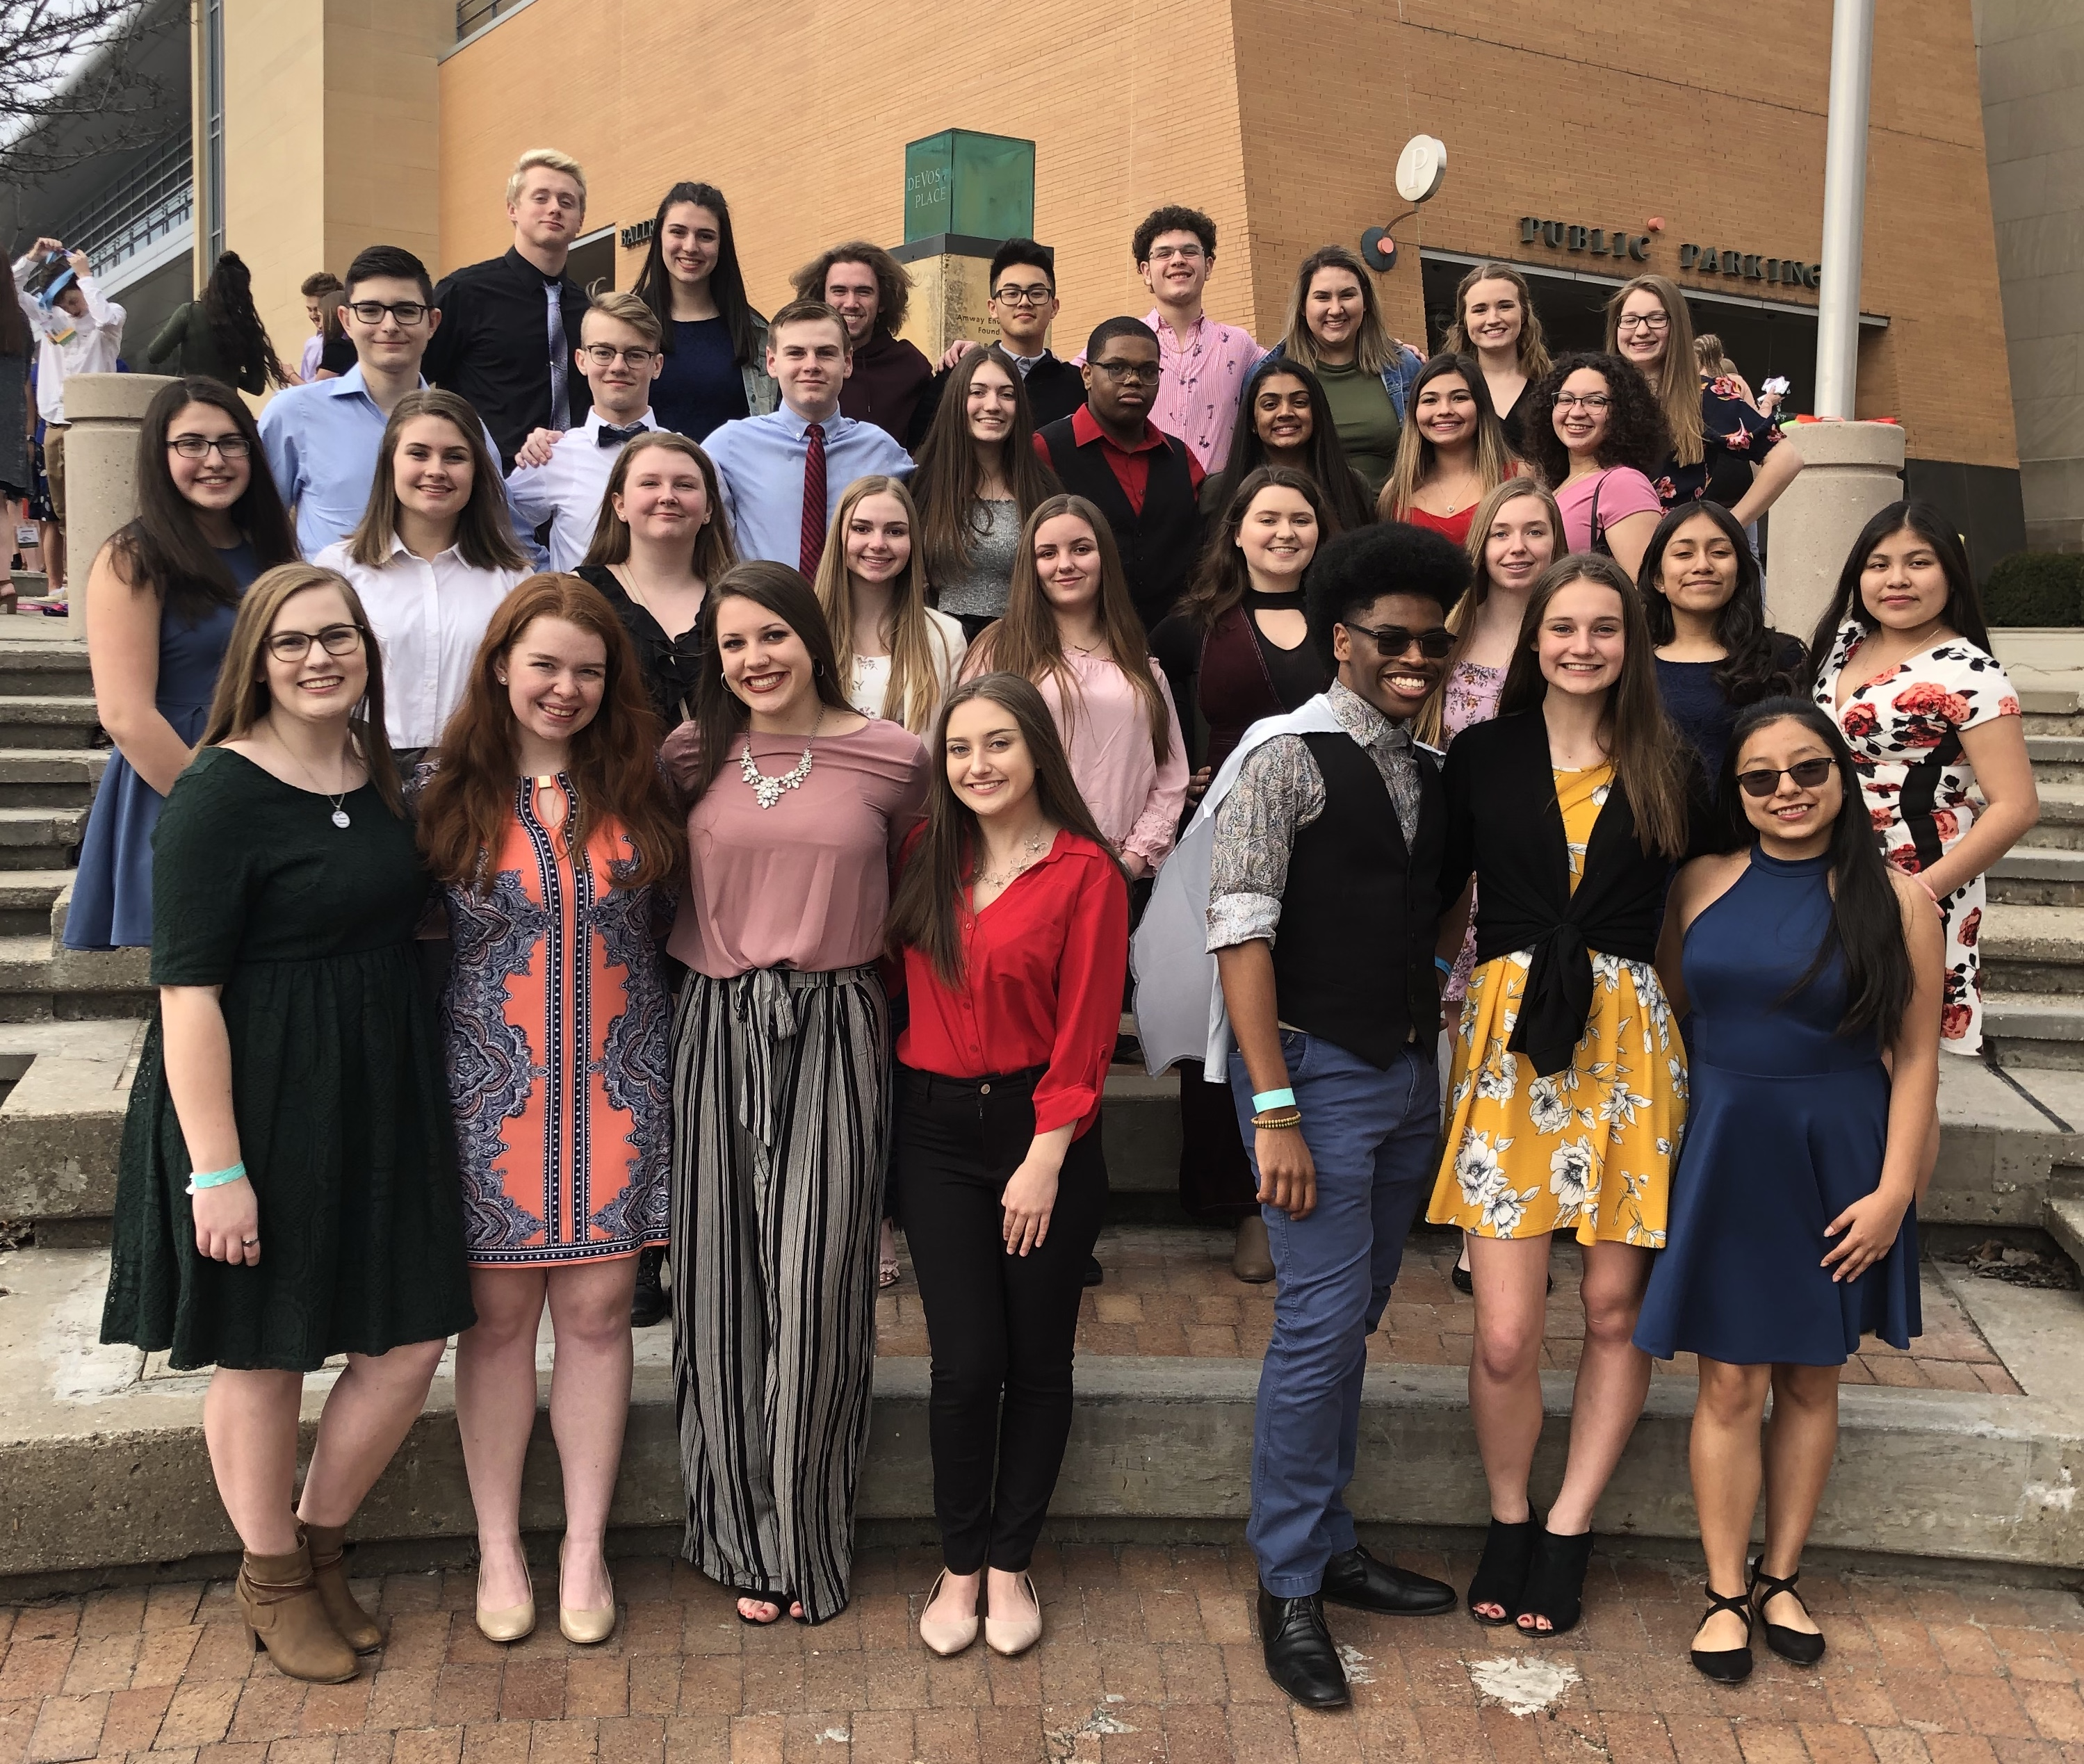 2019-03-28 - Student Leadership Conference